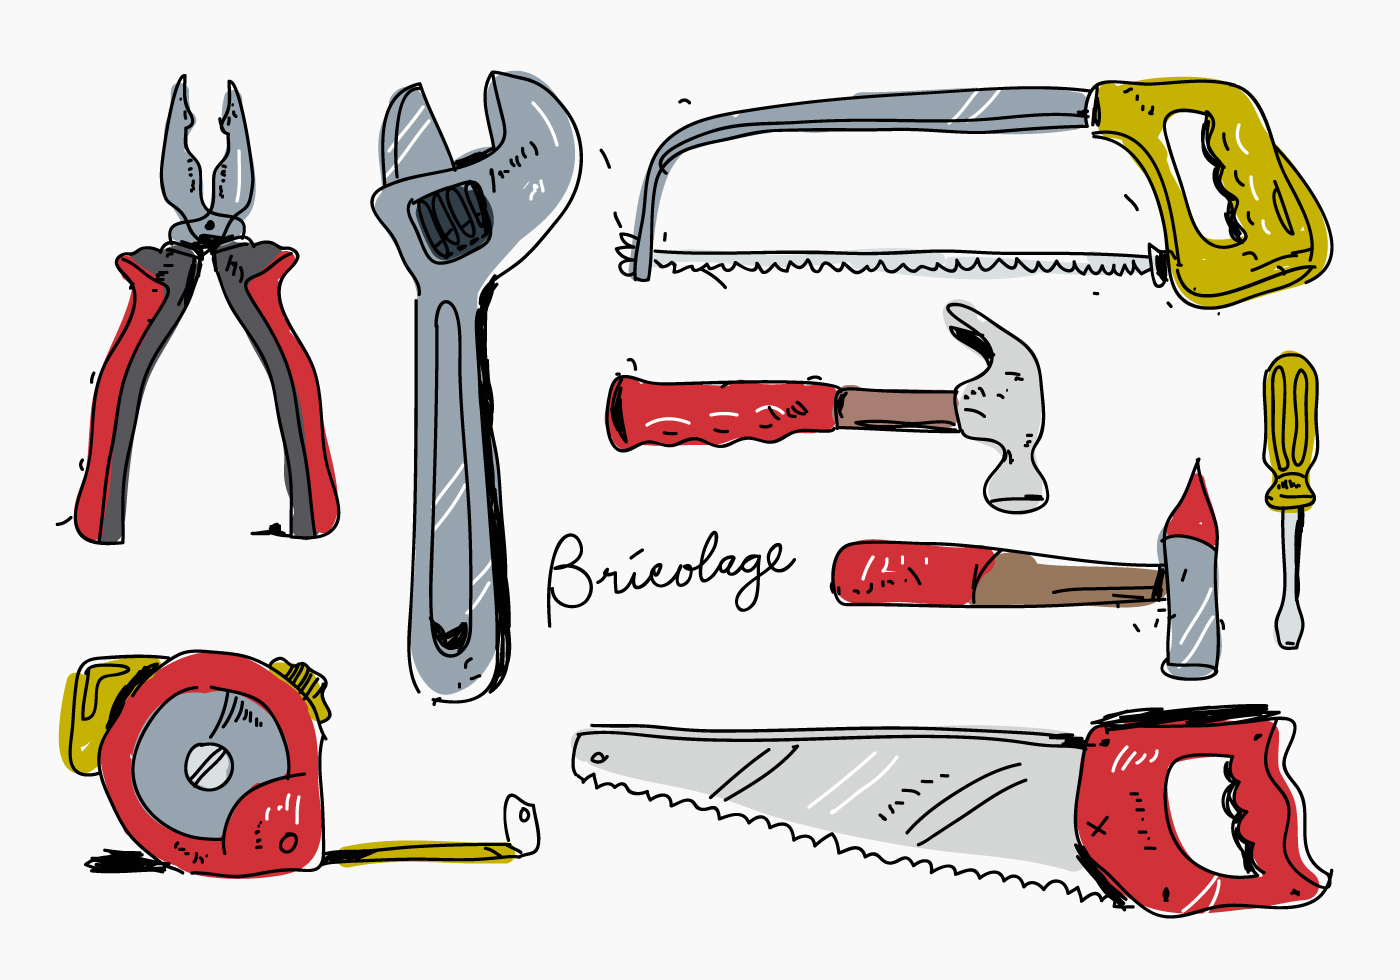 Bricolage hand drawn vector illustration download free - Clipart bricolage ...